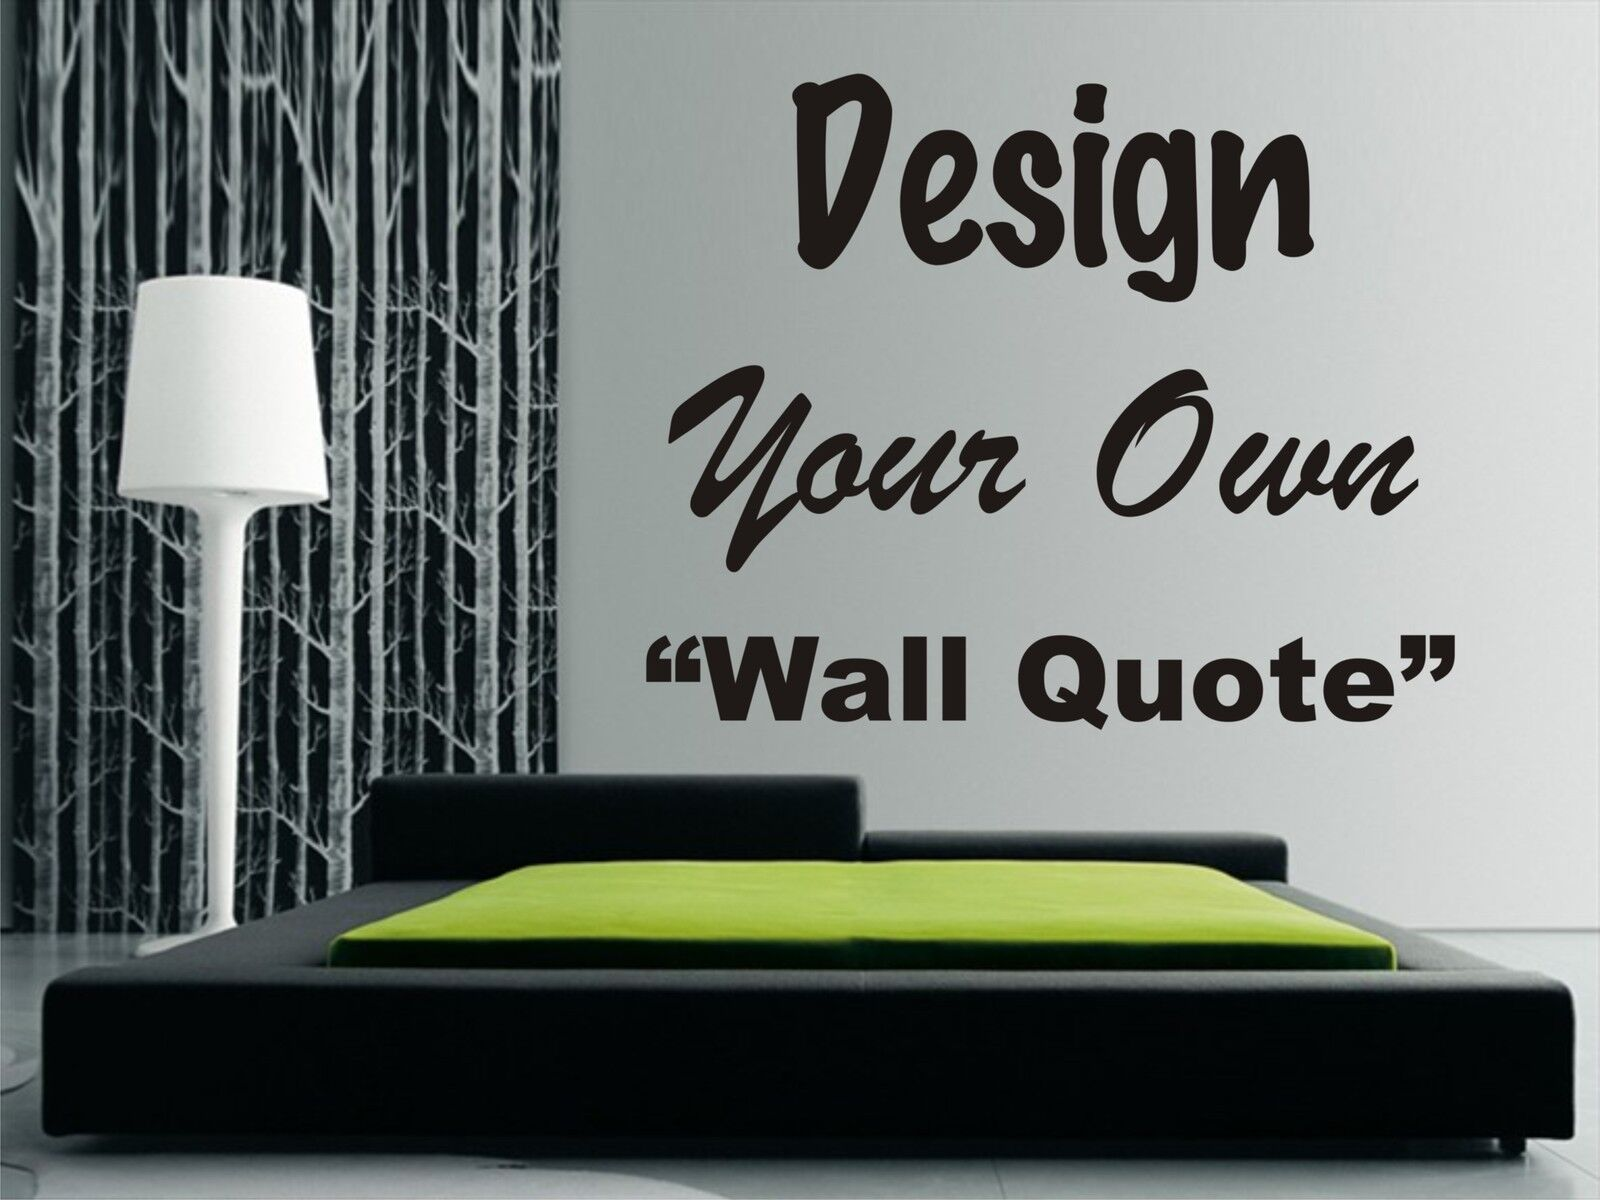 martial art superstore - Design Your Own Wall Art Stickers